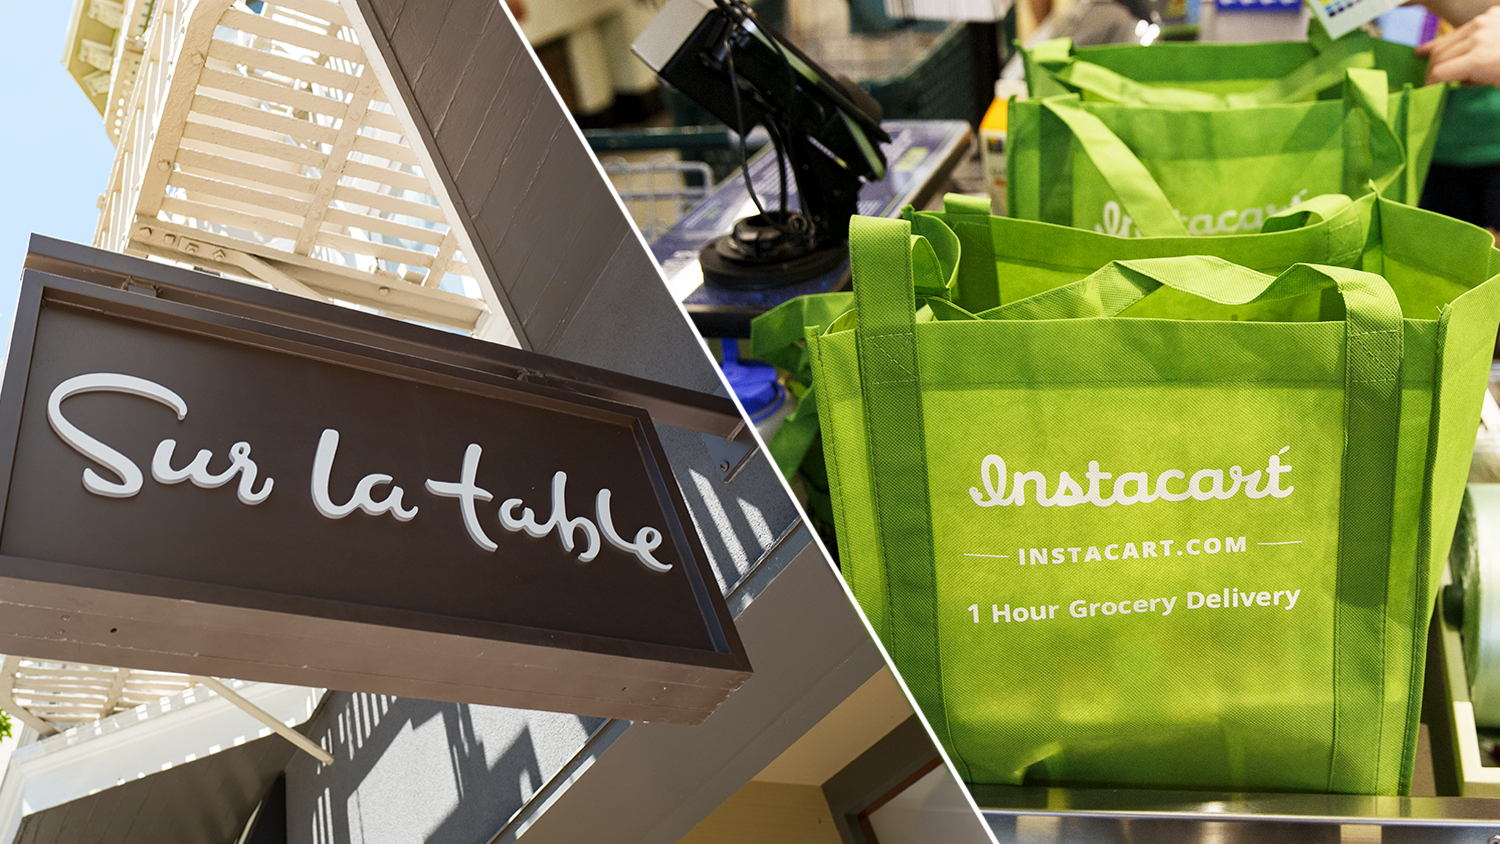 sur la table and instacart